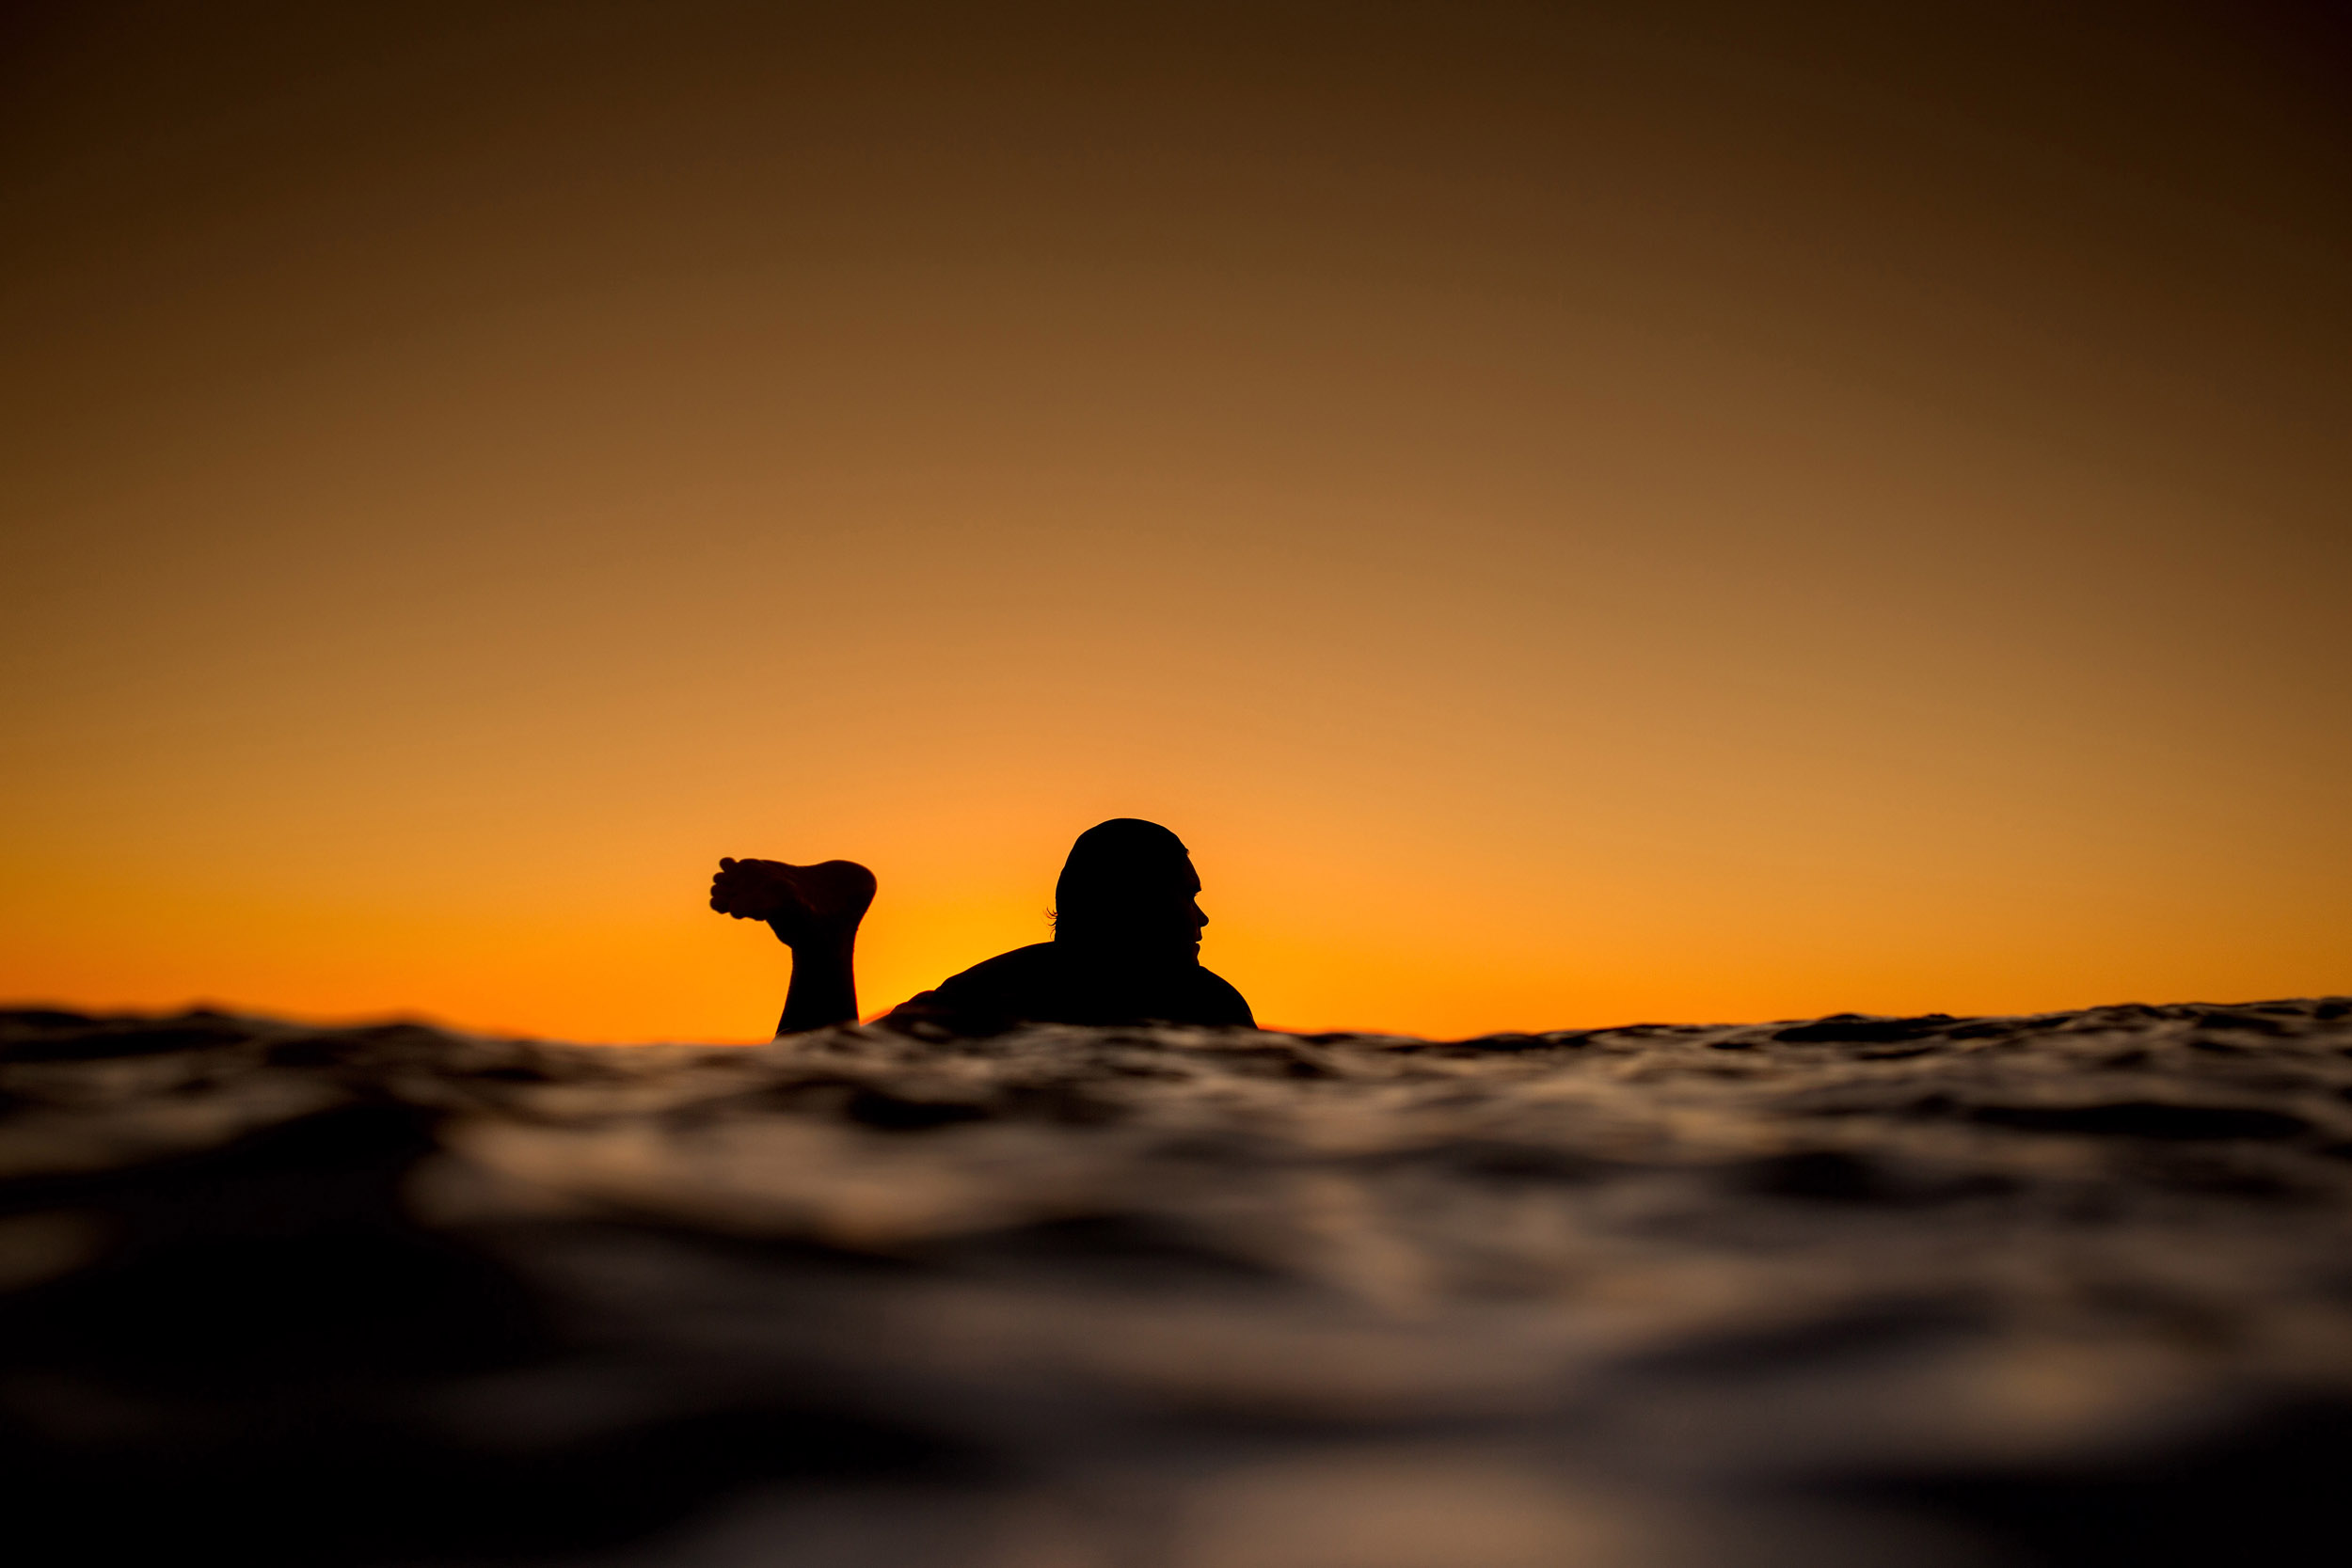 surf-lifestyle-water-photography.jpg